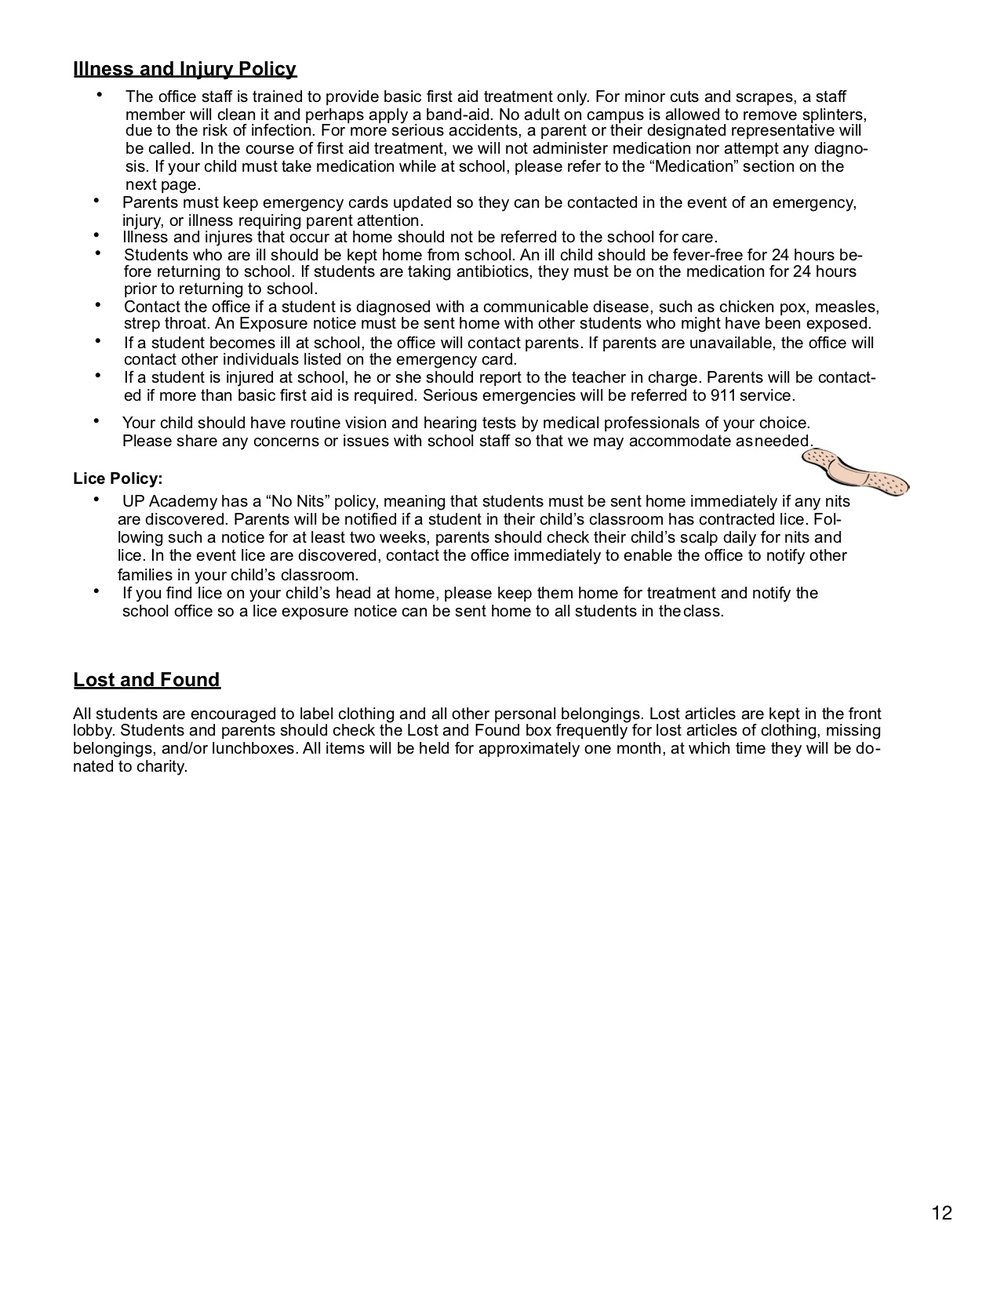 18-19 Parent and Student Handbook V4-11.jpg